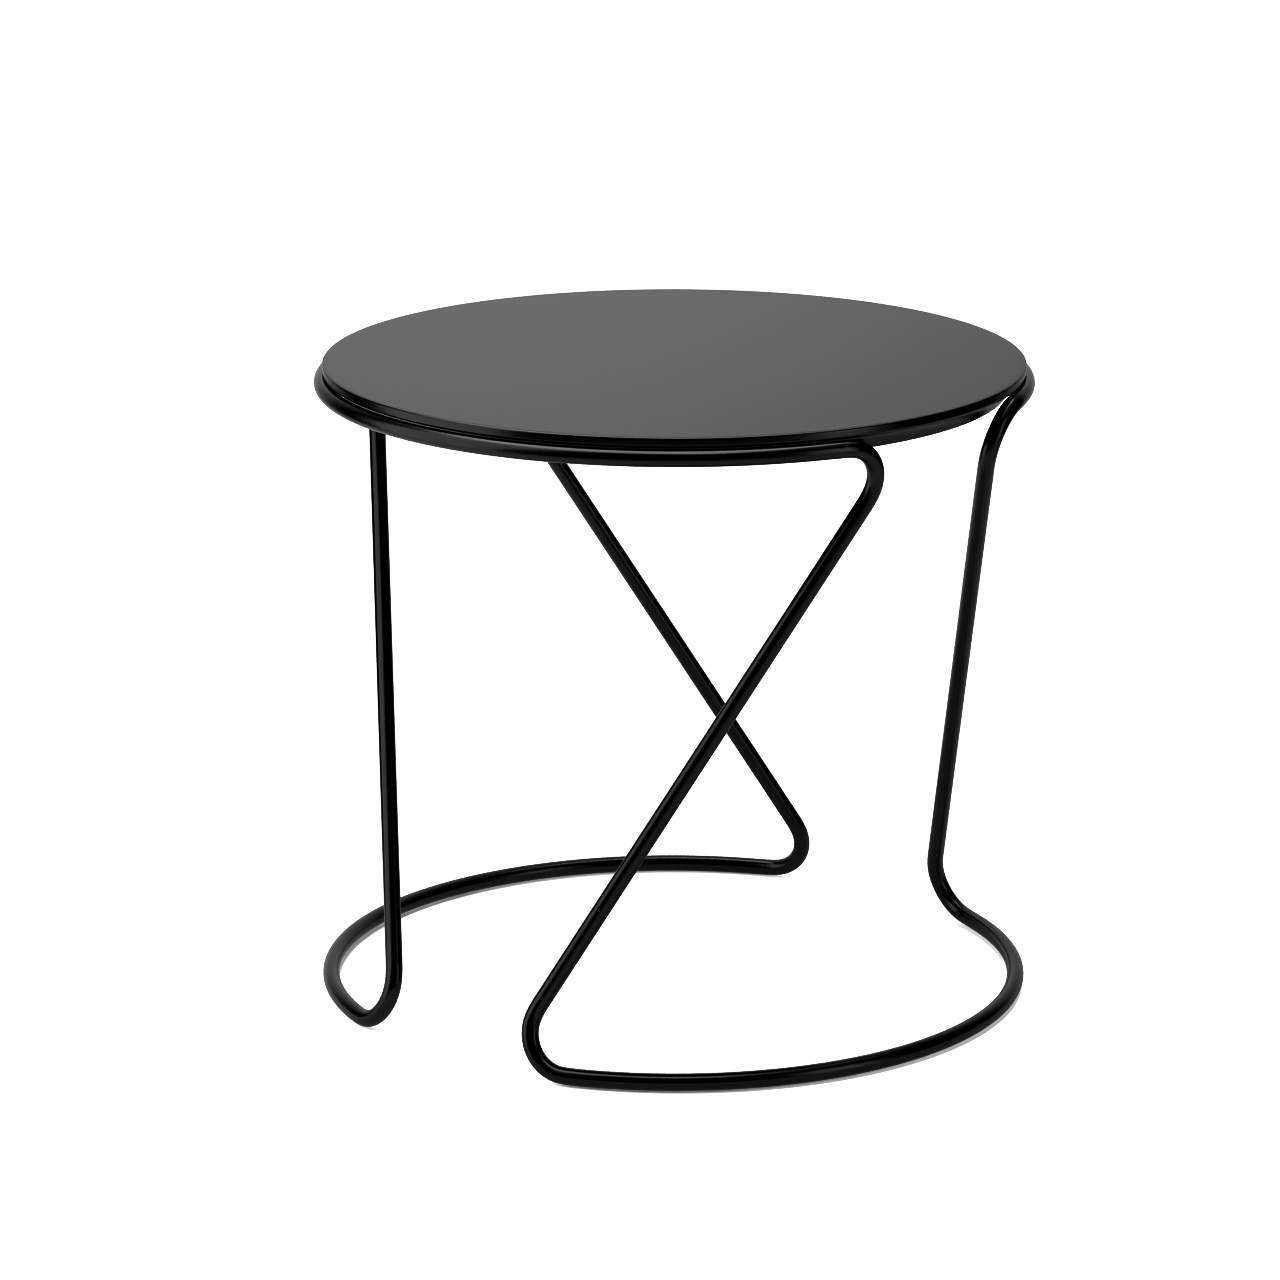 S 18 side table by thonet dimensiva for Table thonet